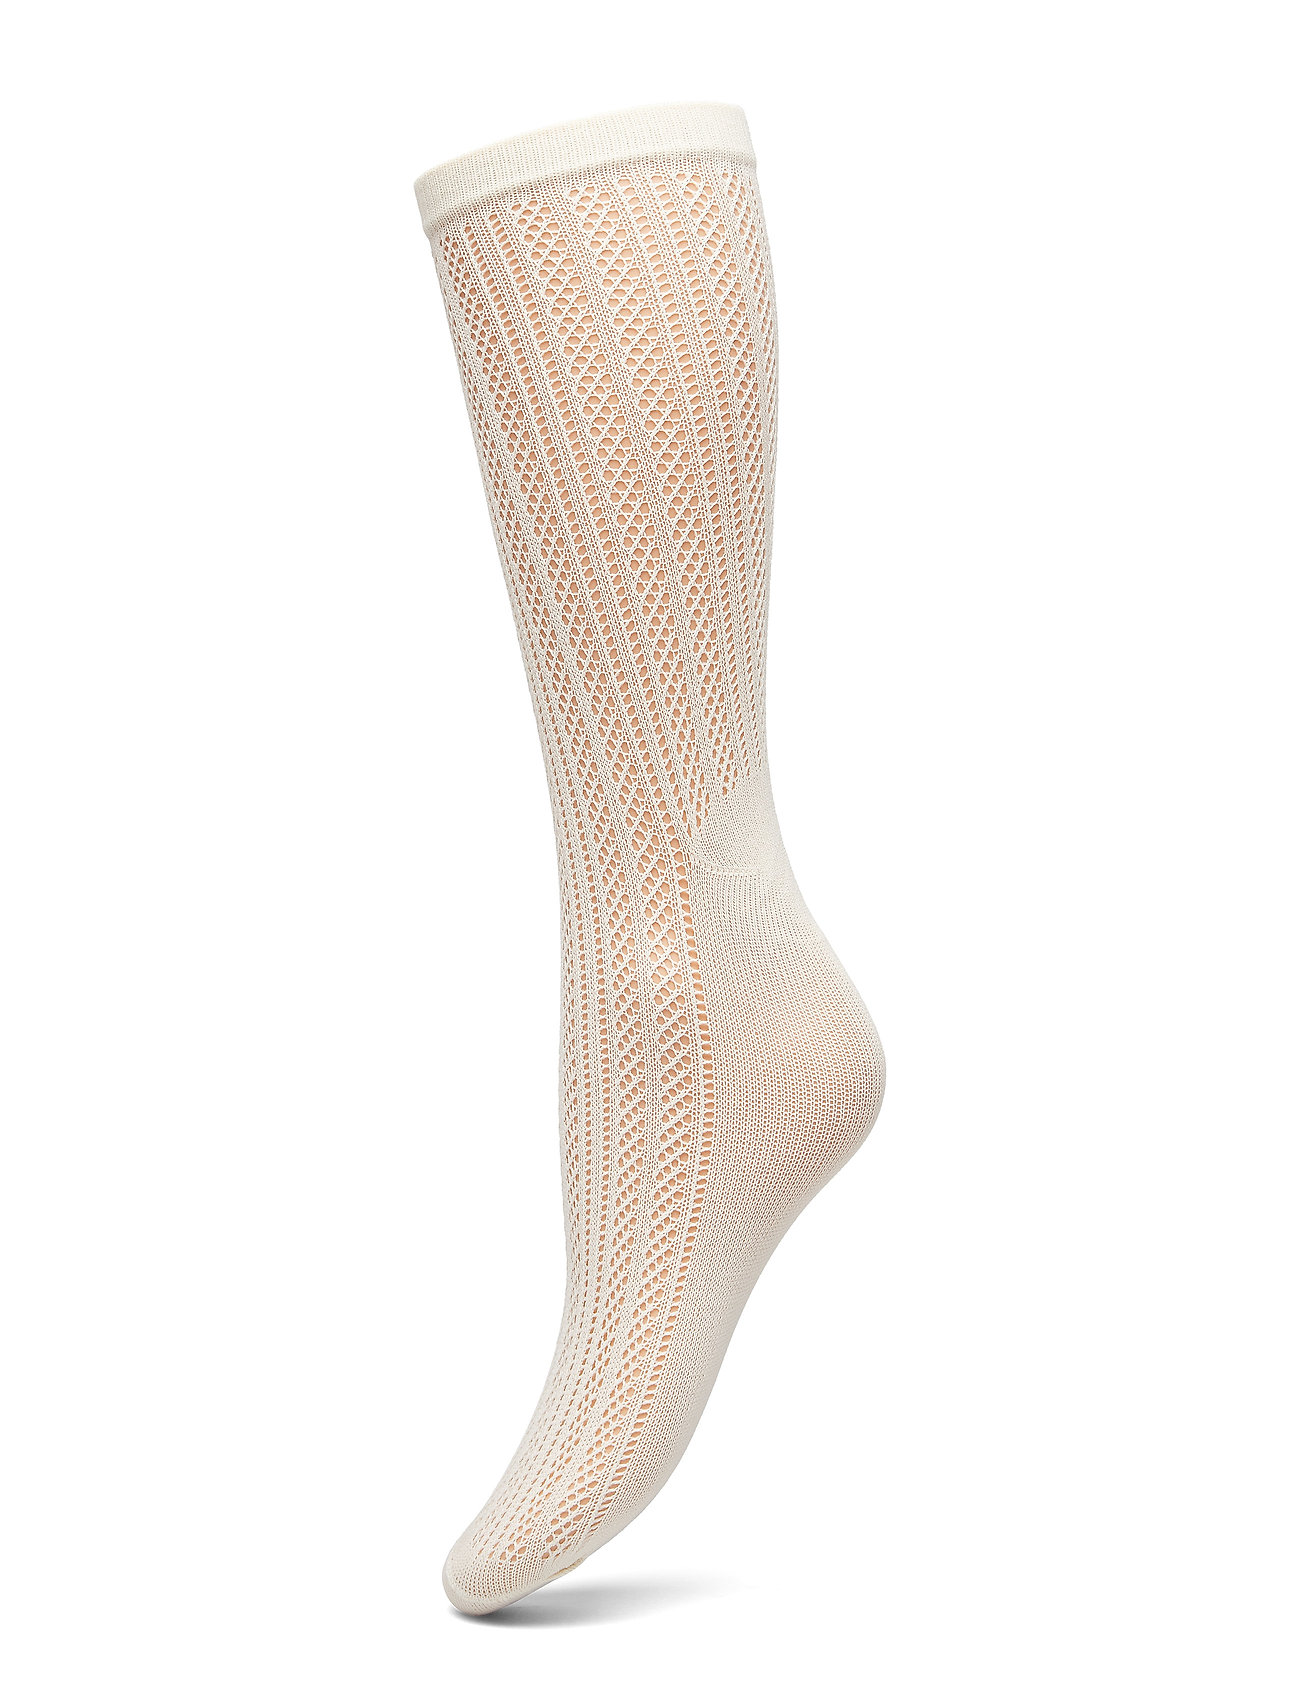 Swedish Stockings Klara knit sock - IVORY